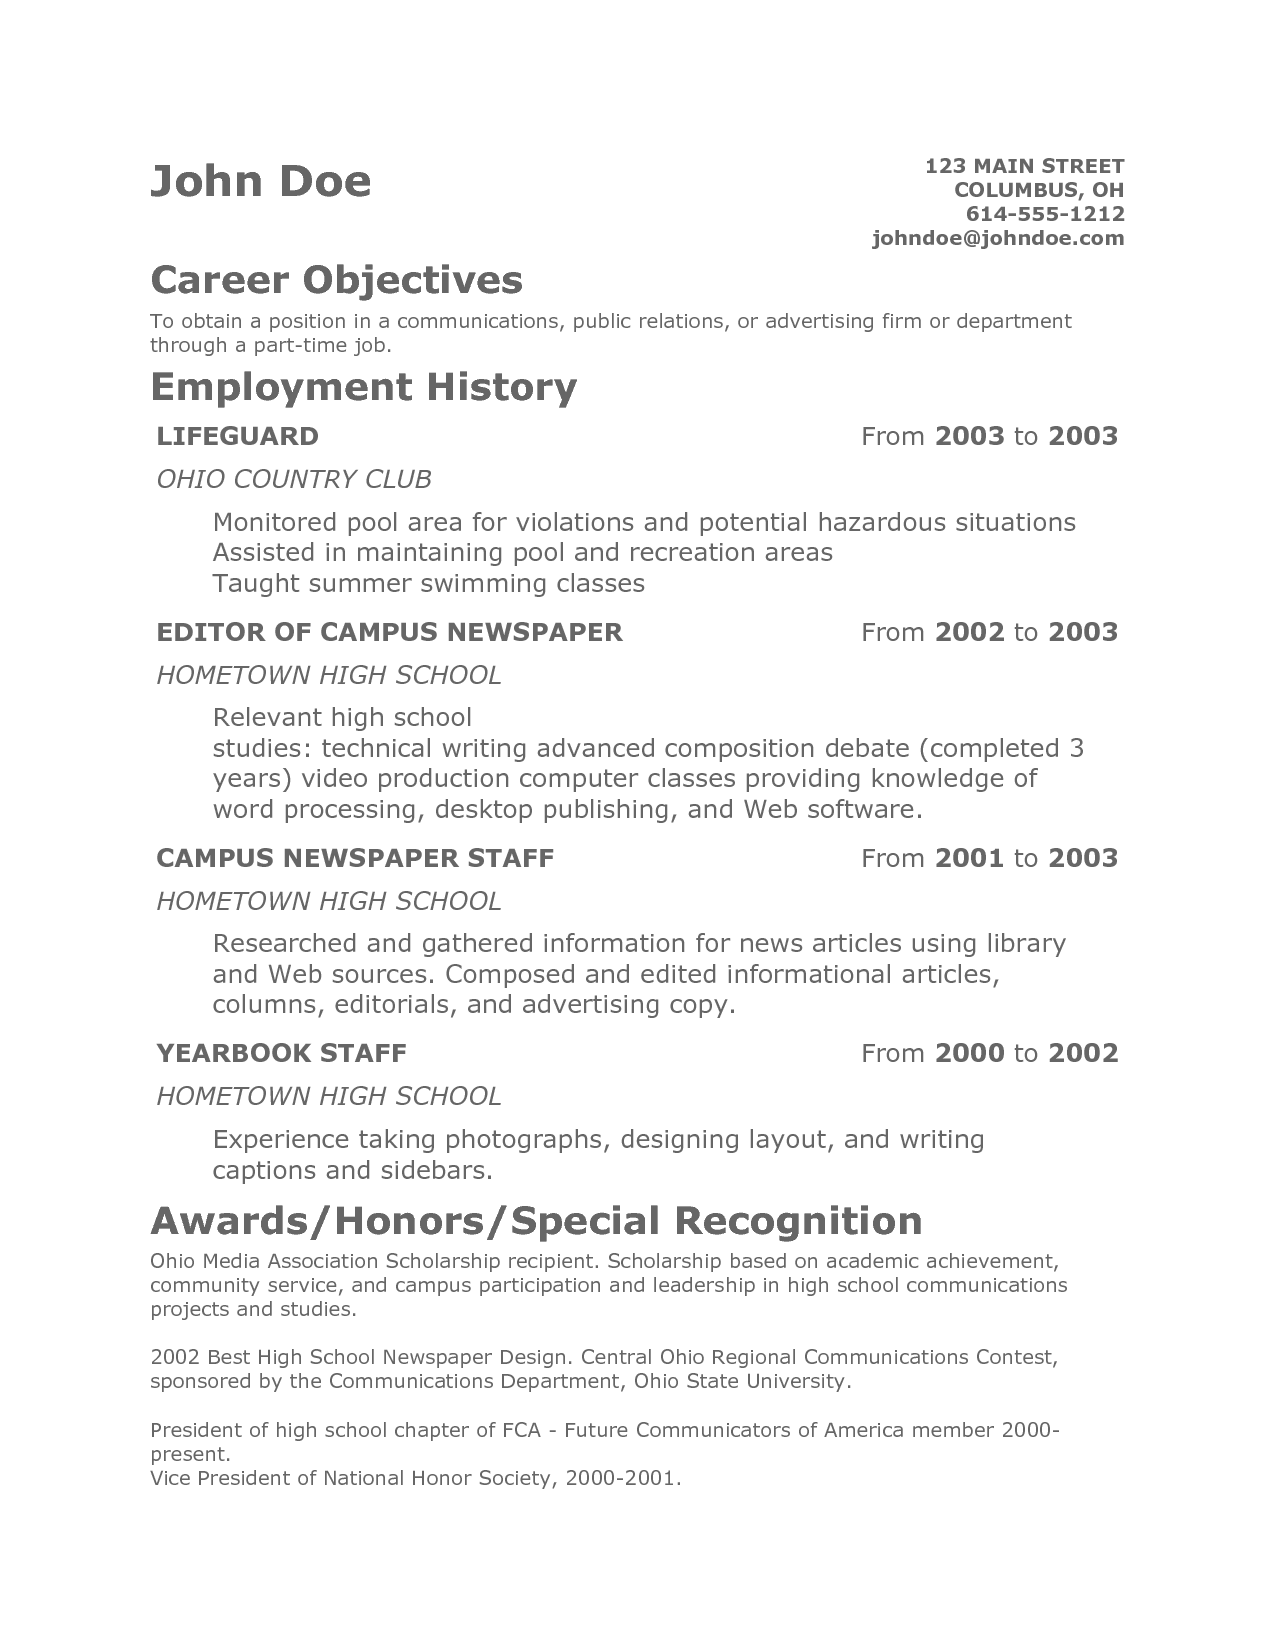 A Teenage Resume Examples Resume objective examples